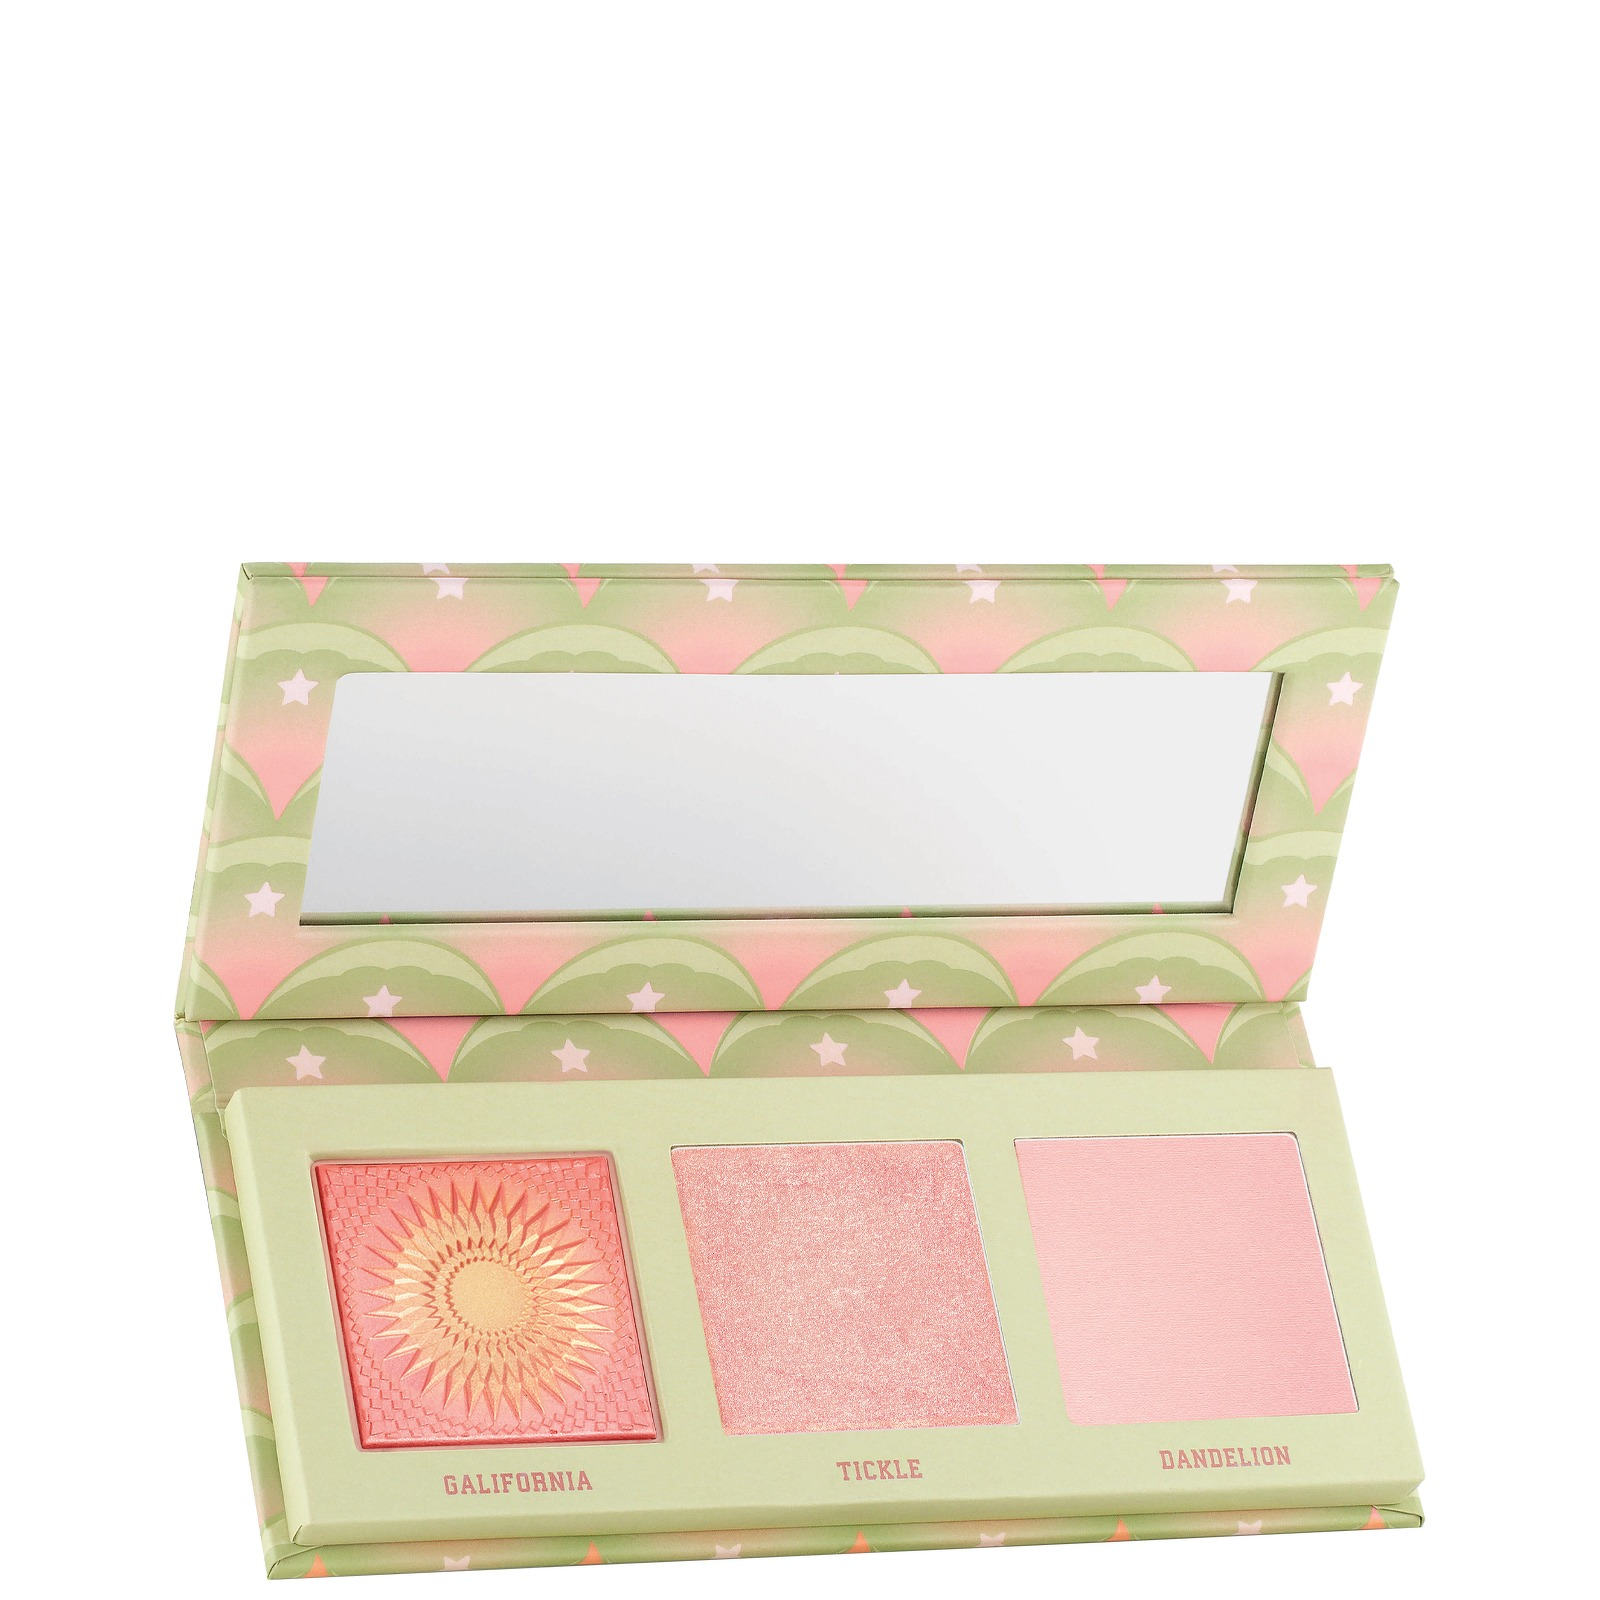 Benefit Makeup Kits Cheekleaders Mini